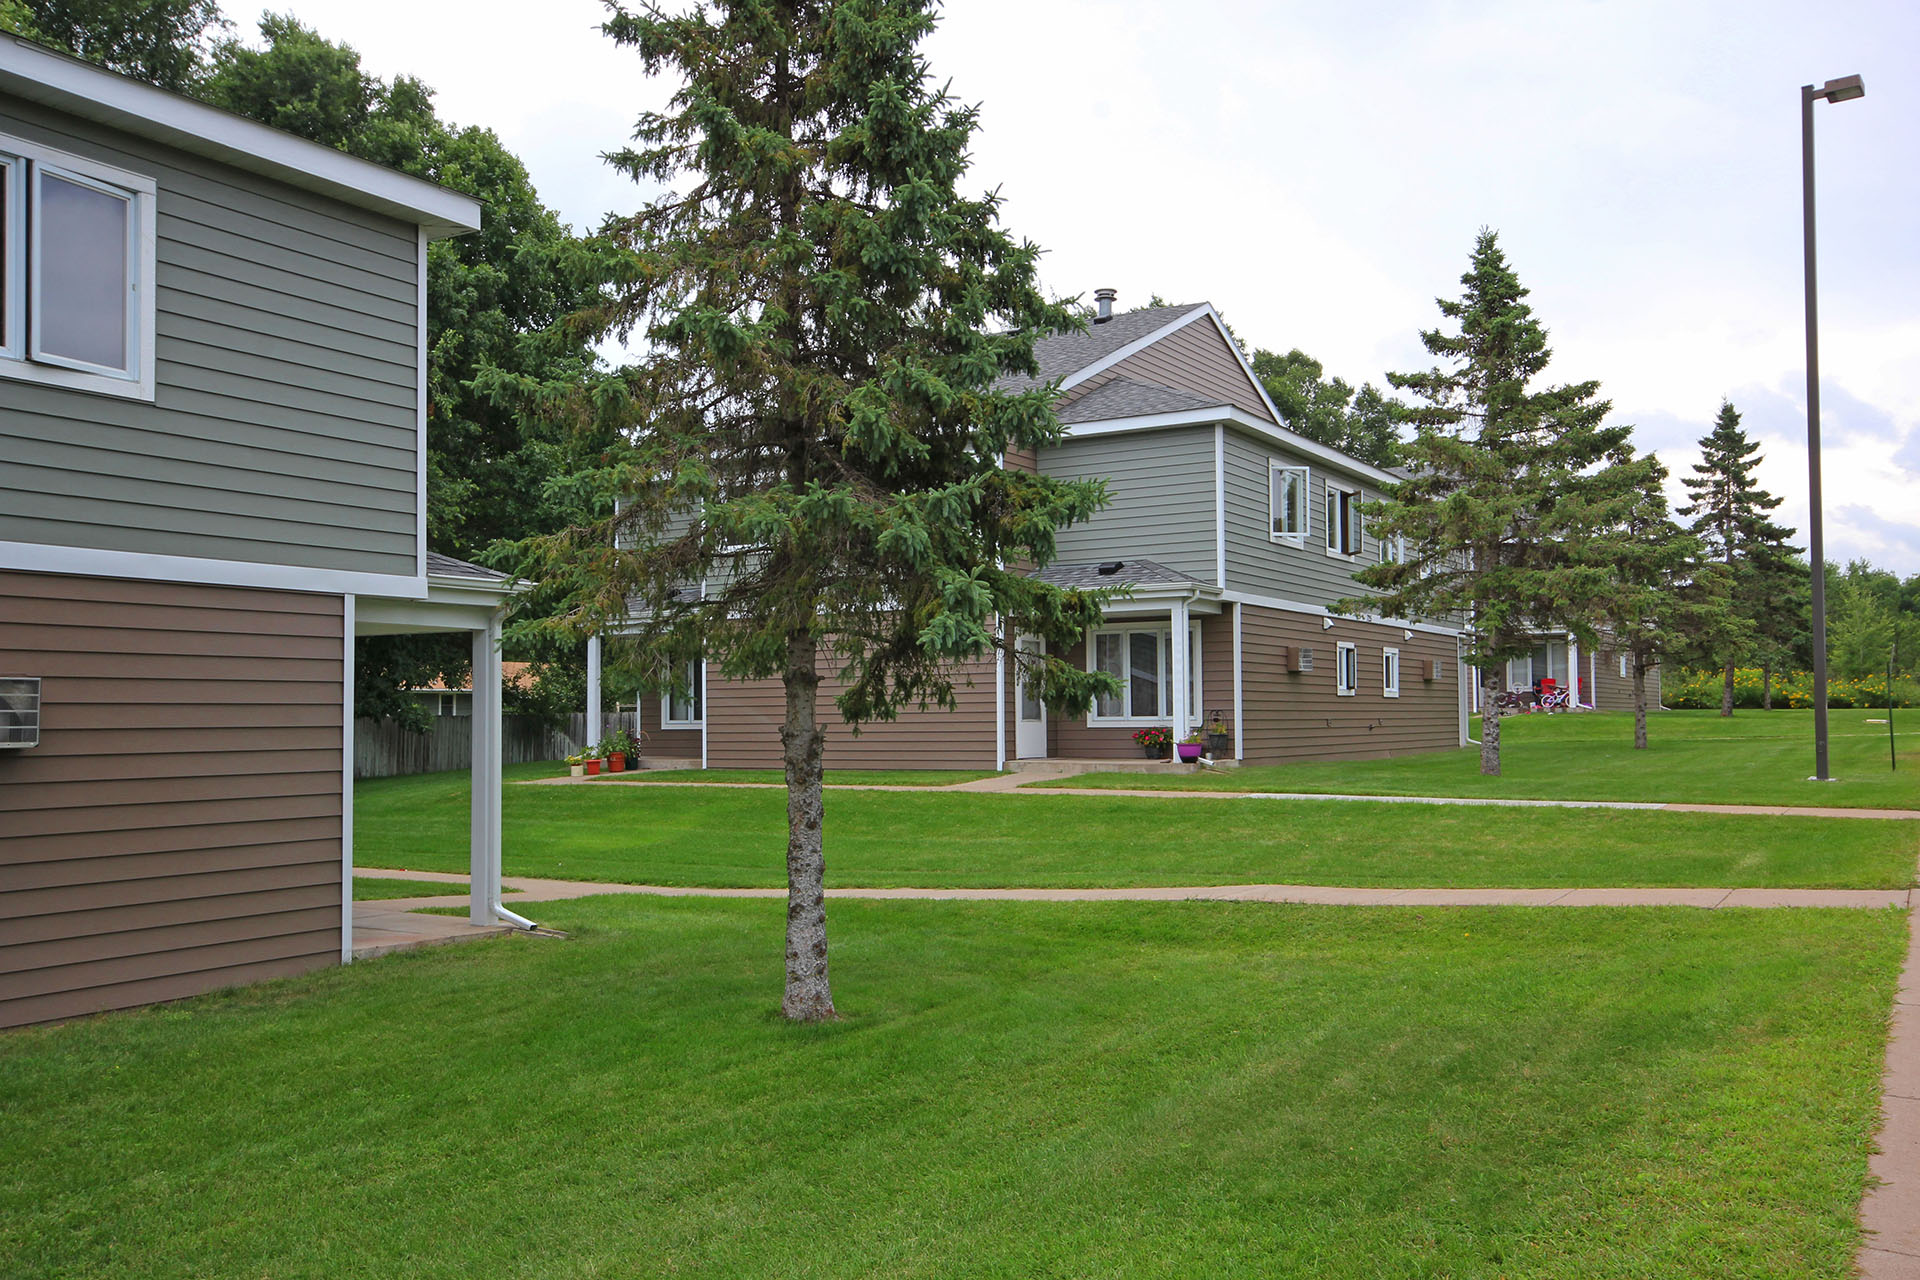 Image of Ridgeview I Apartments in Brainerd, Minnesota